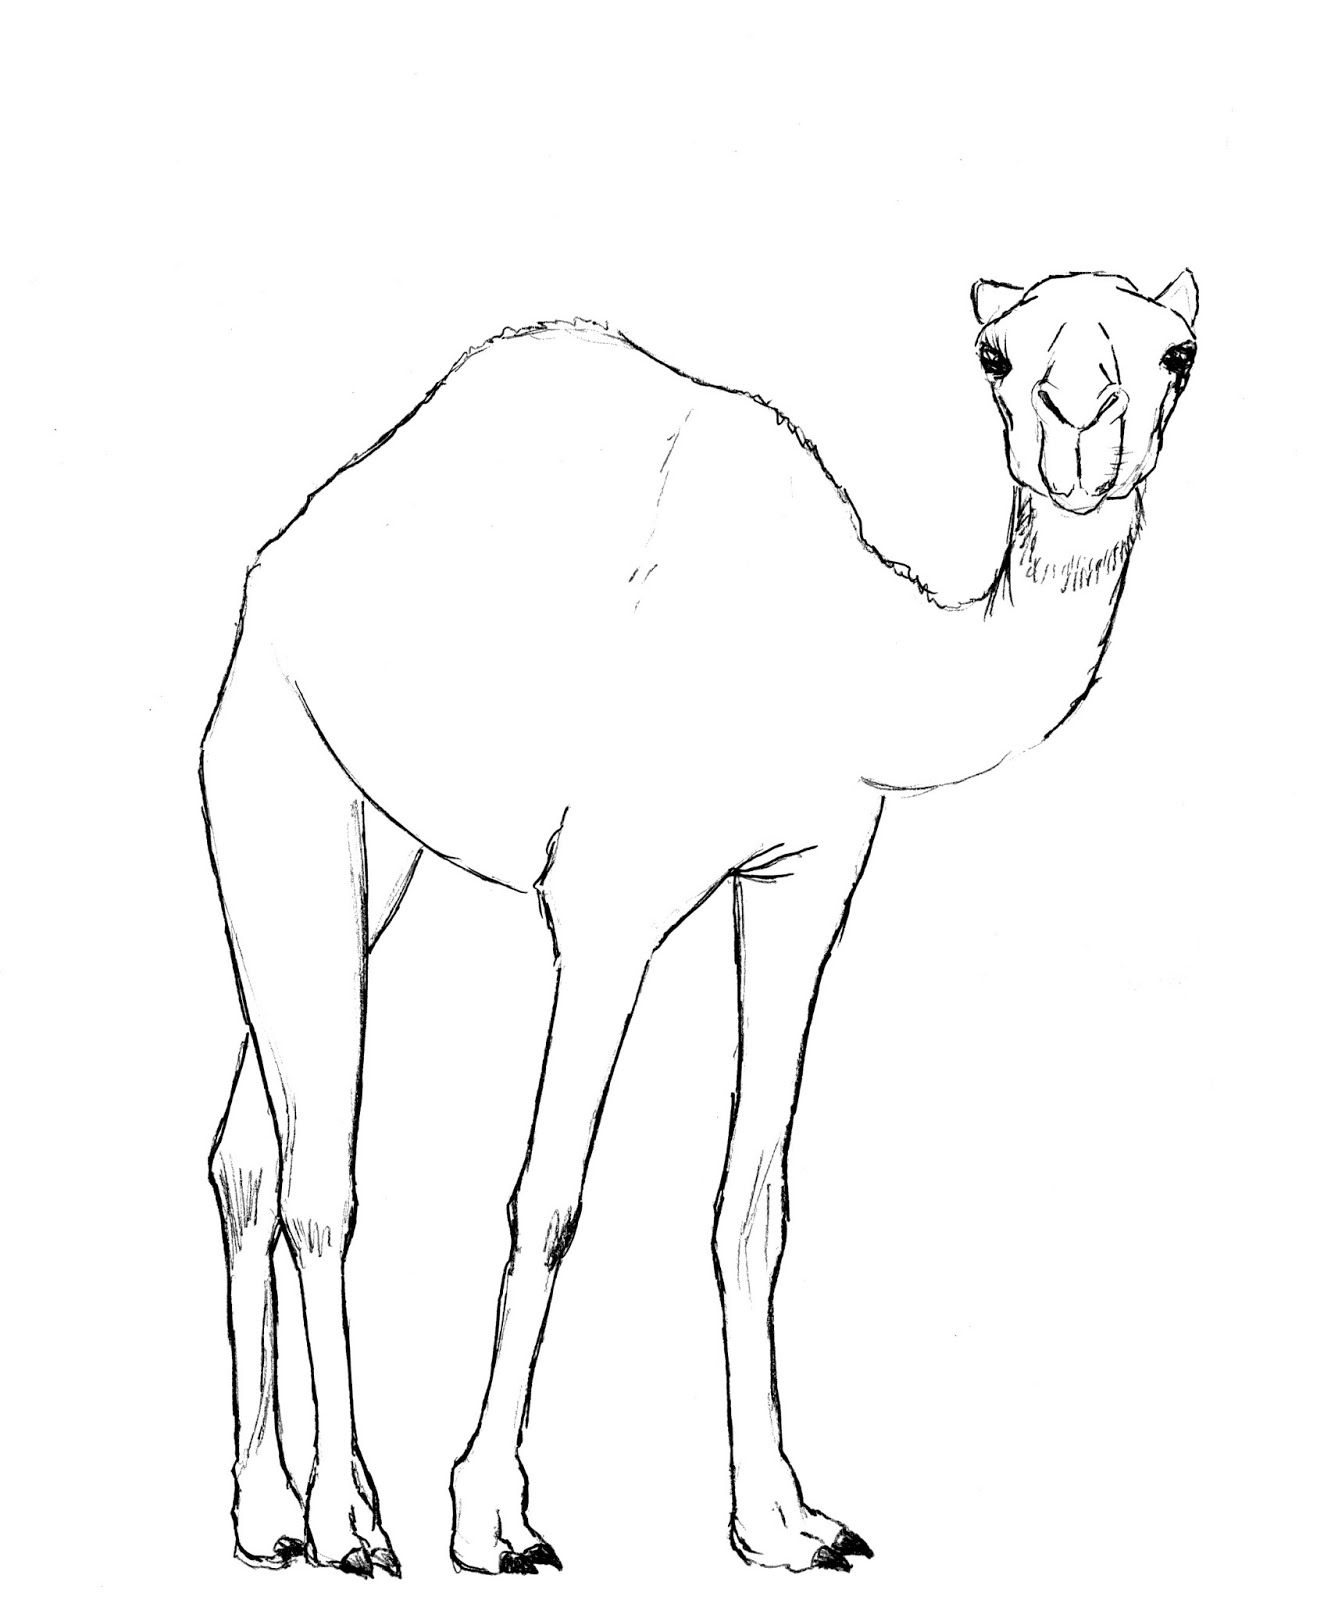 Draw Camel Pencil Drawing In 2019 Pinterest Pencil Drawings Of